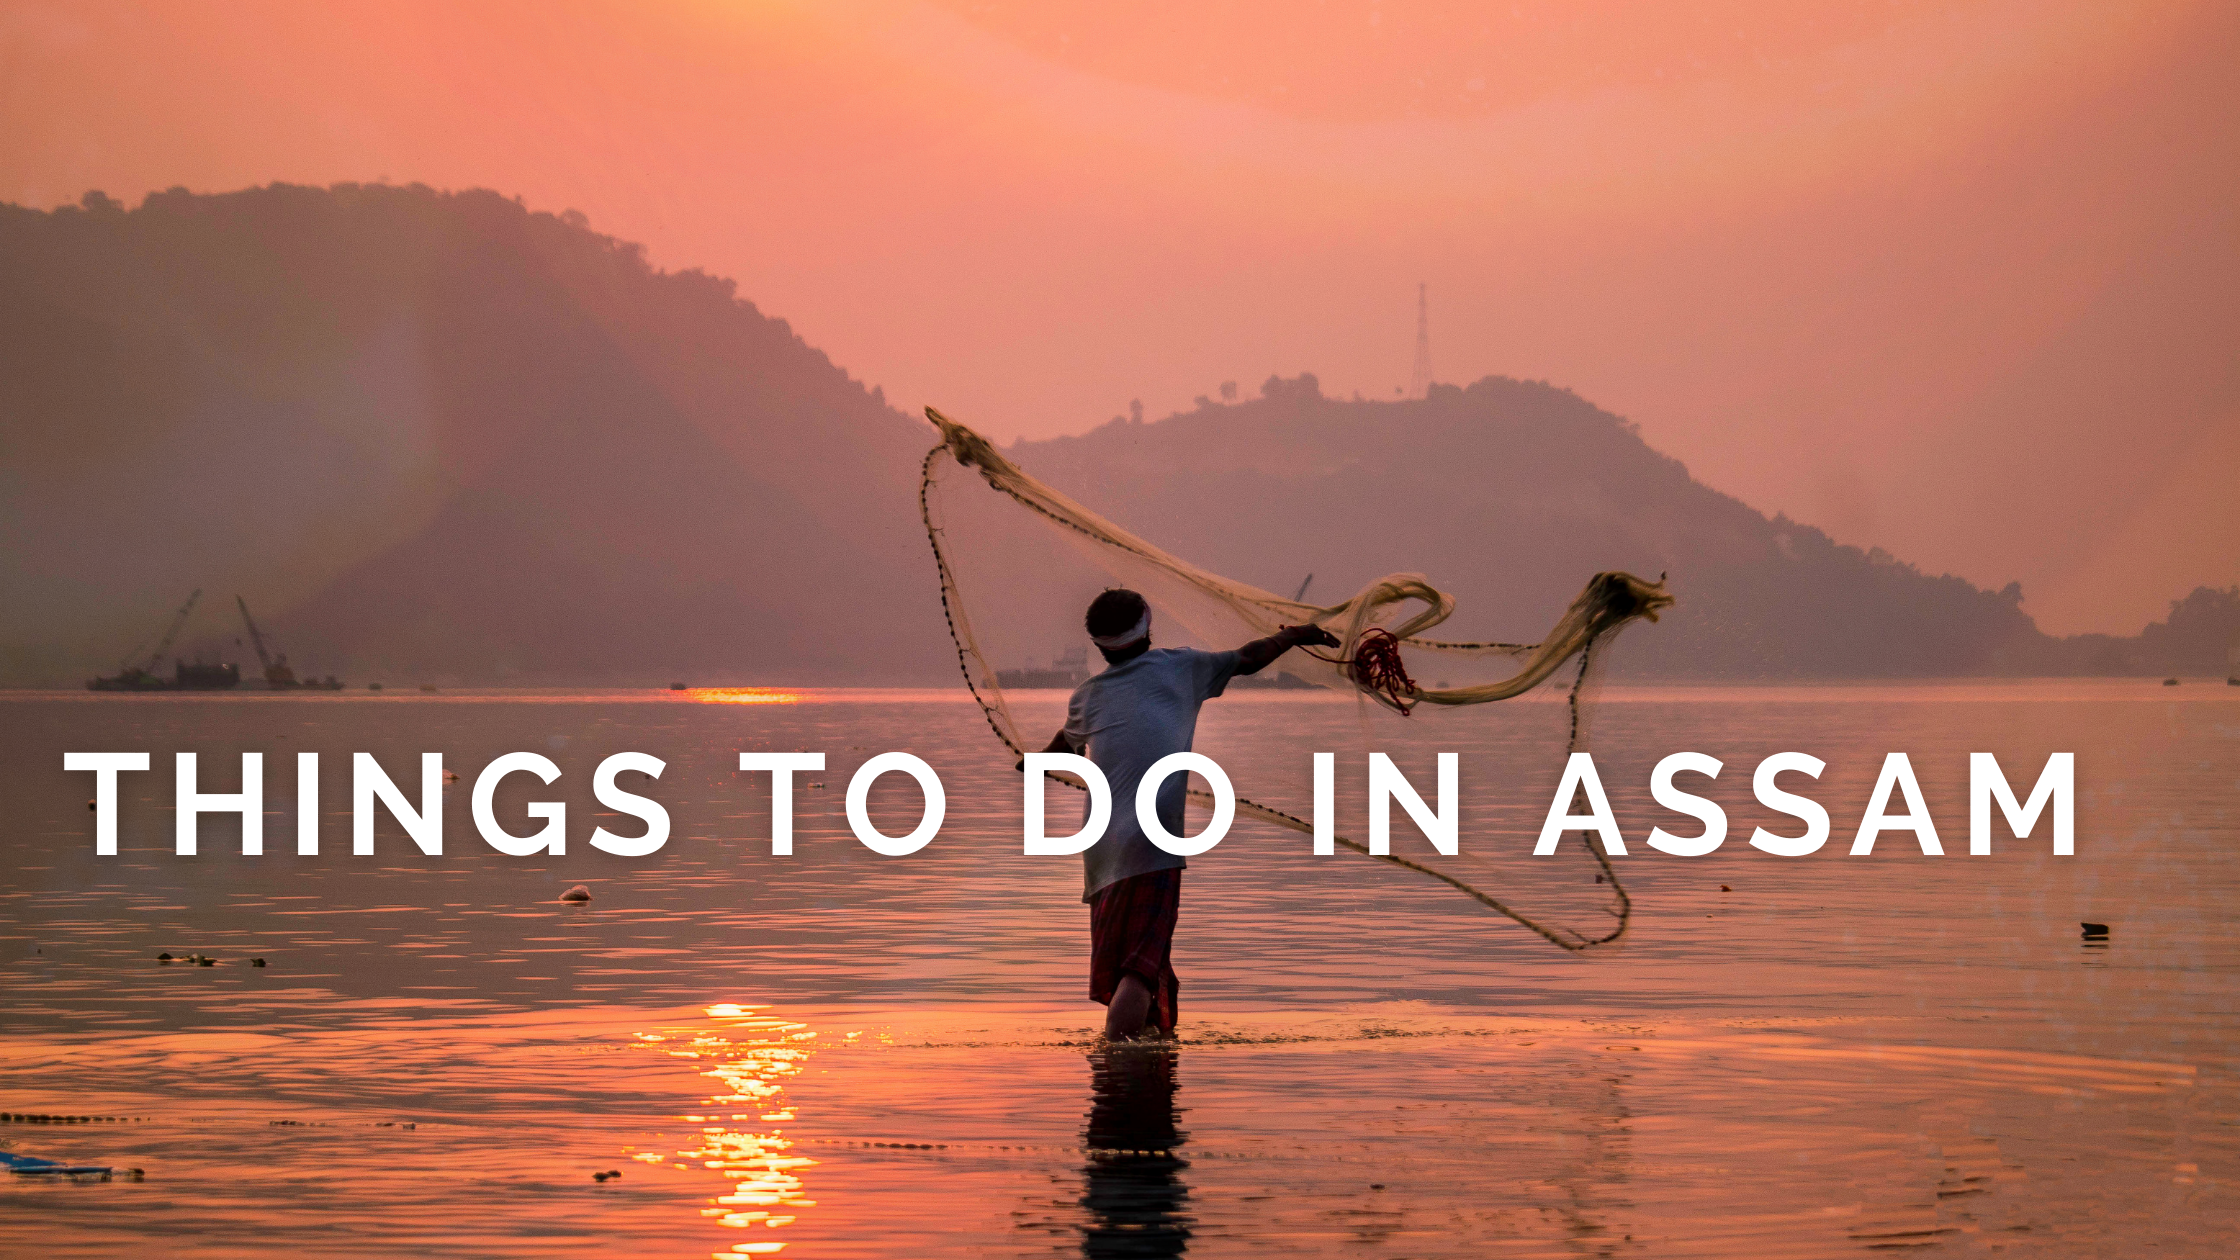 Top 6 things to do in Assam